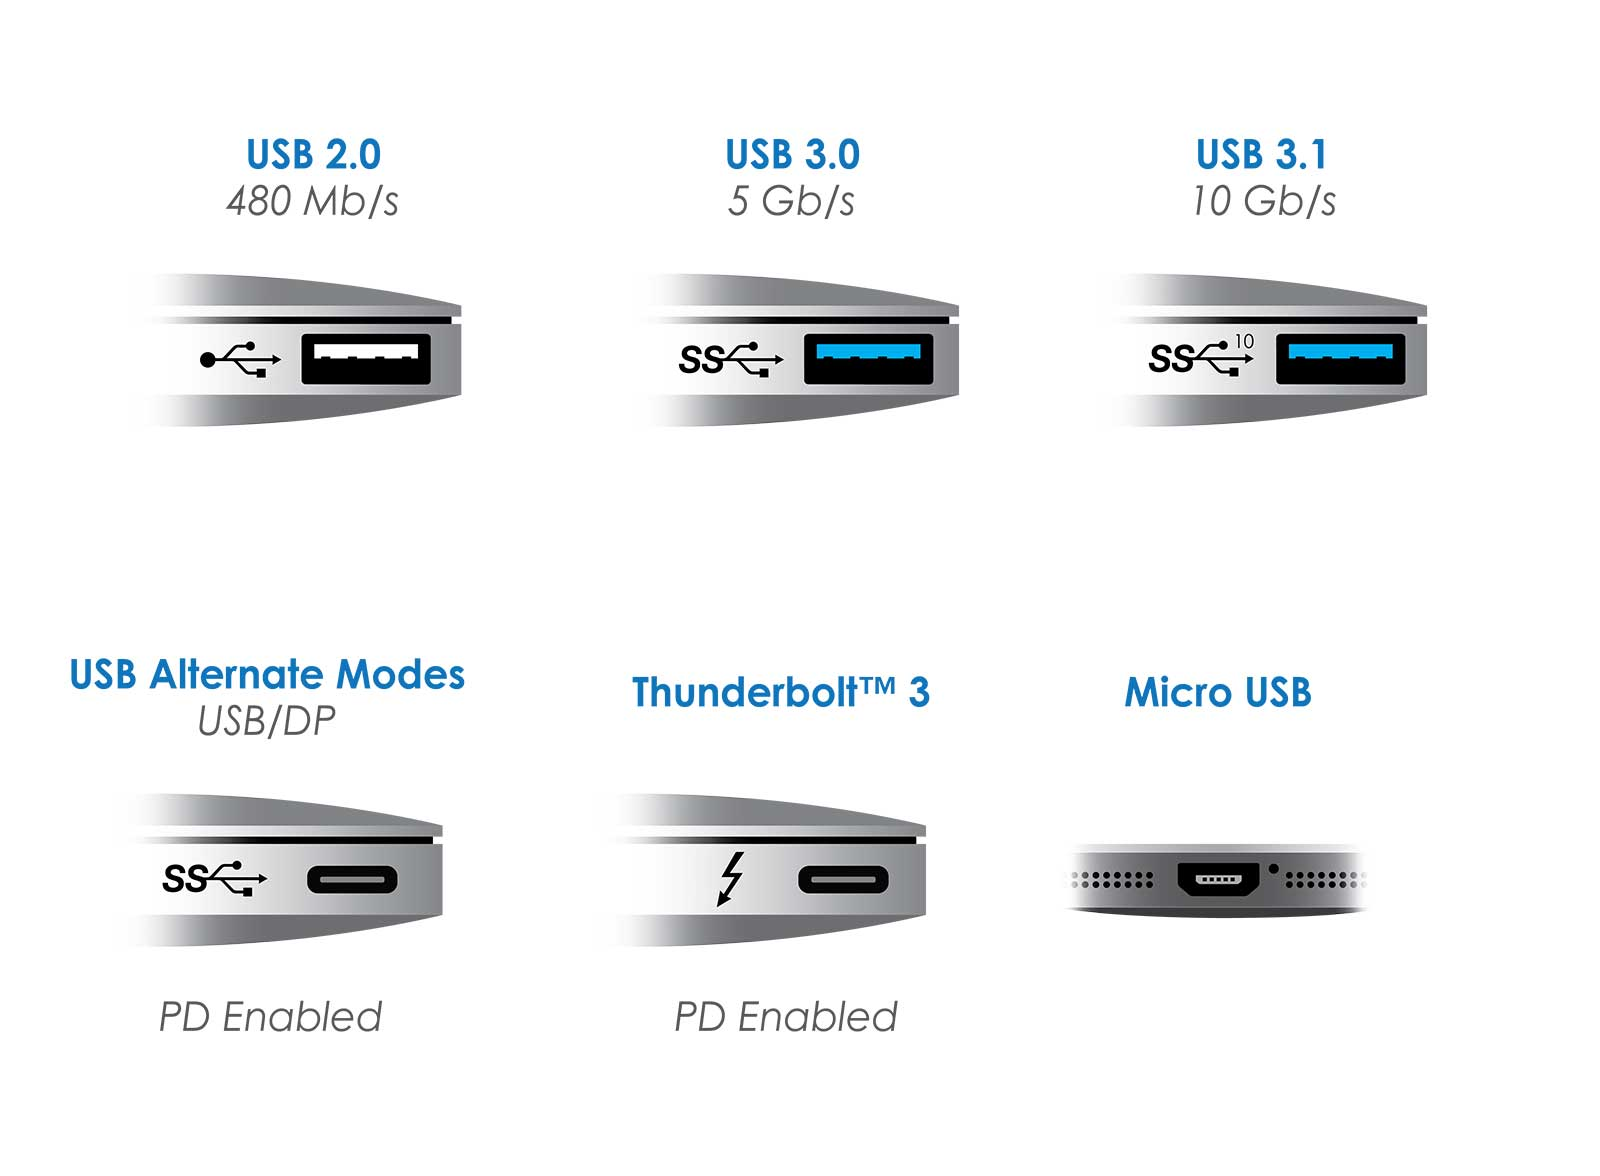 Future MacBook Could Provide Support for USB 3 1 Gen 2